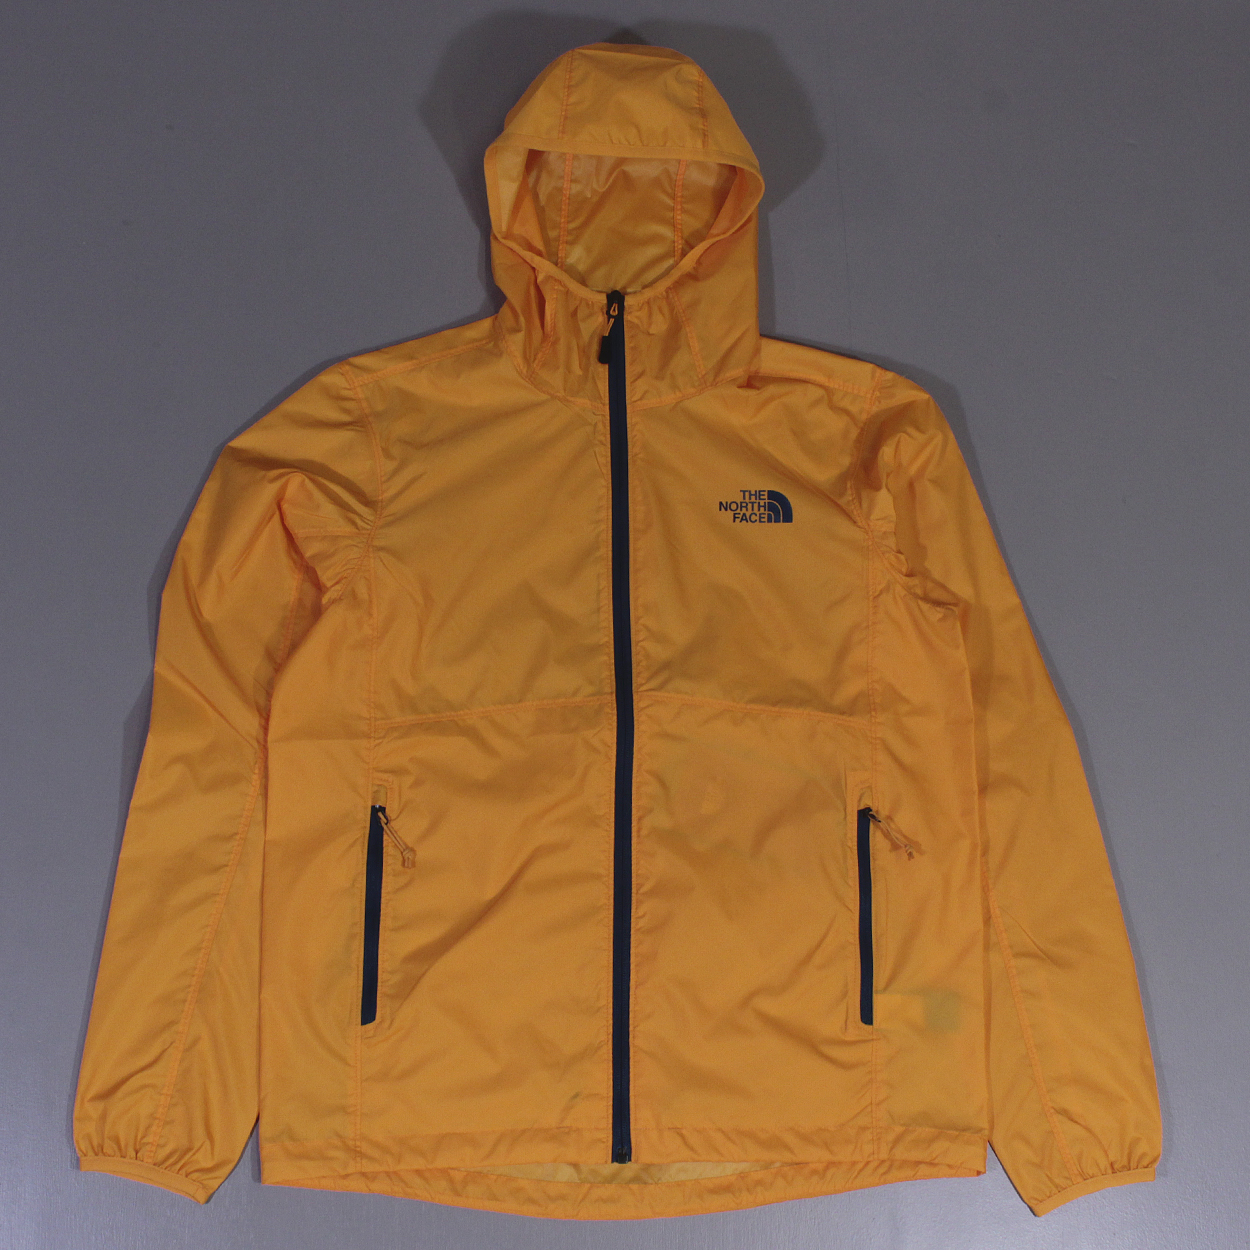 a1ab7d59f159 ... low price the north face mens light windproof flyweight hoodie coat  yellow 37.50 c9e74 78a53